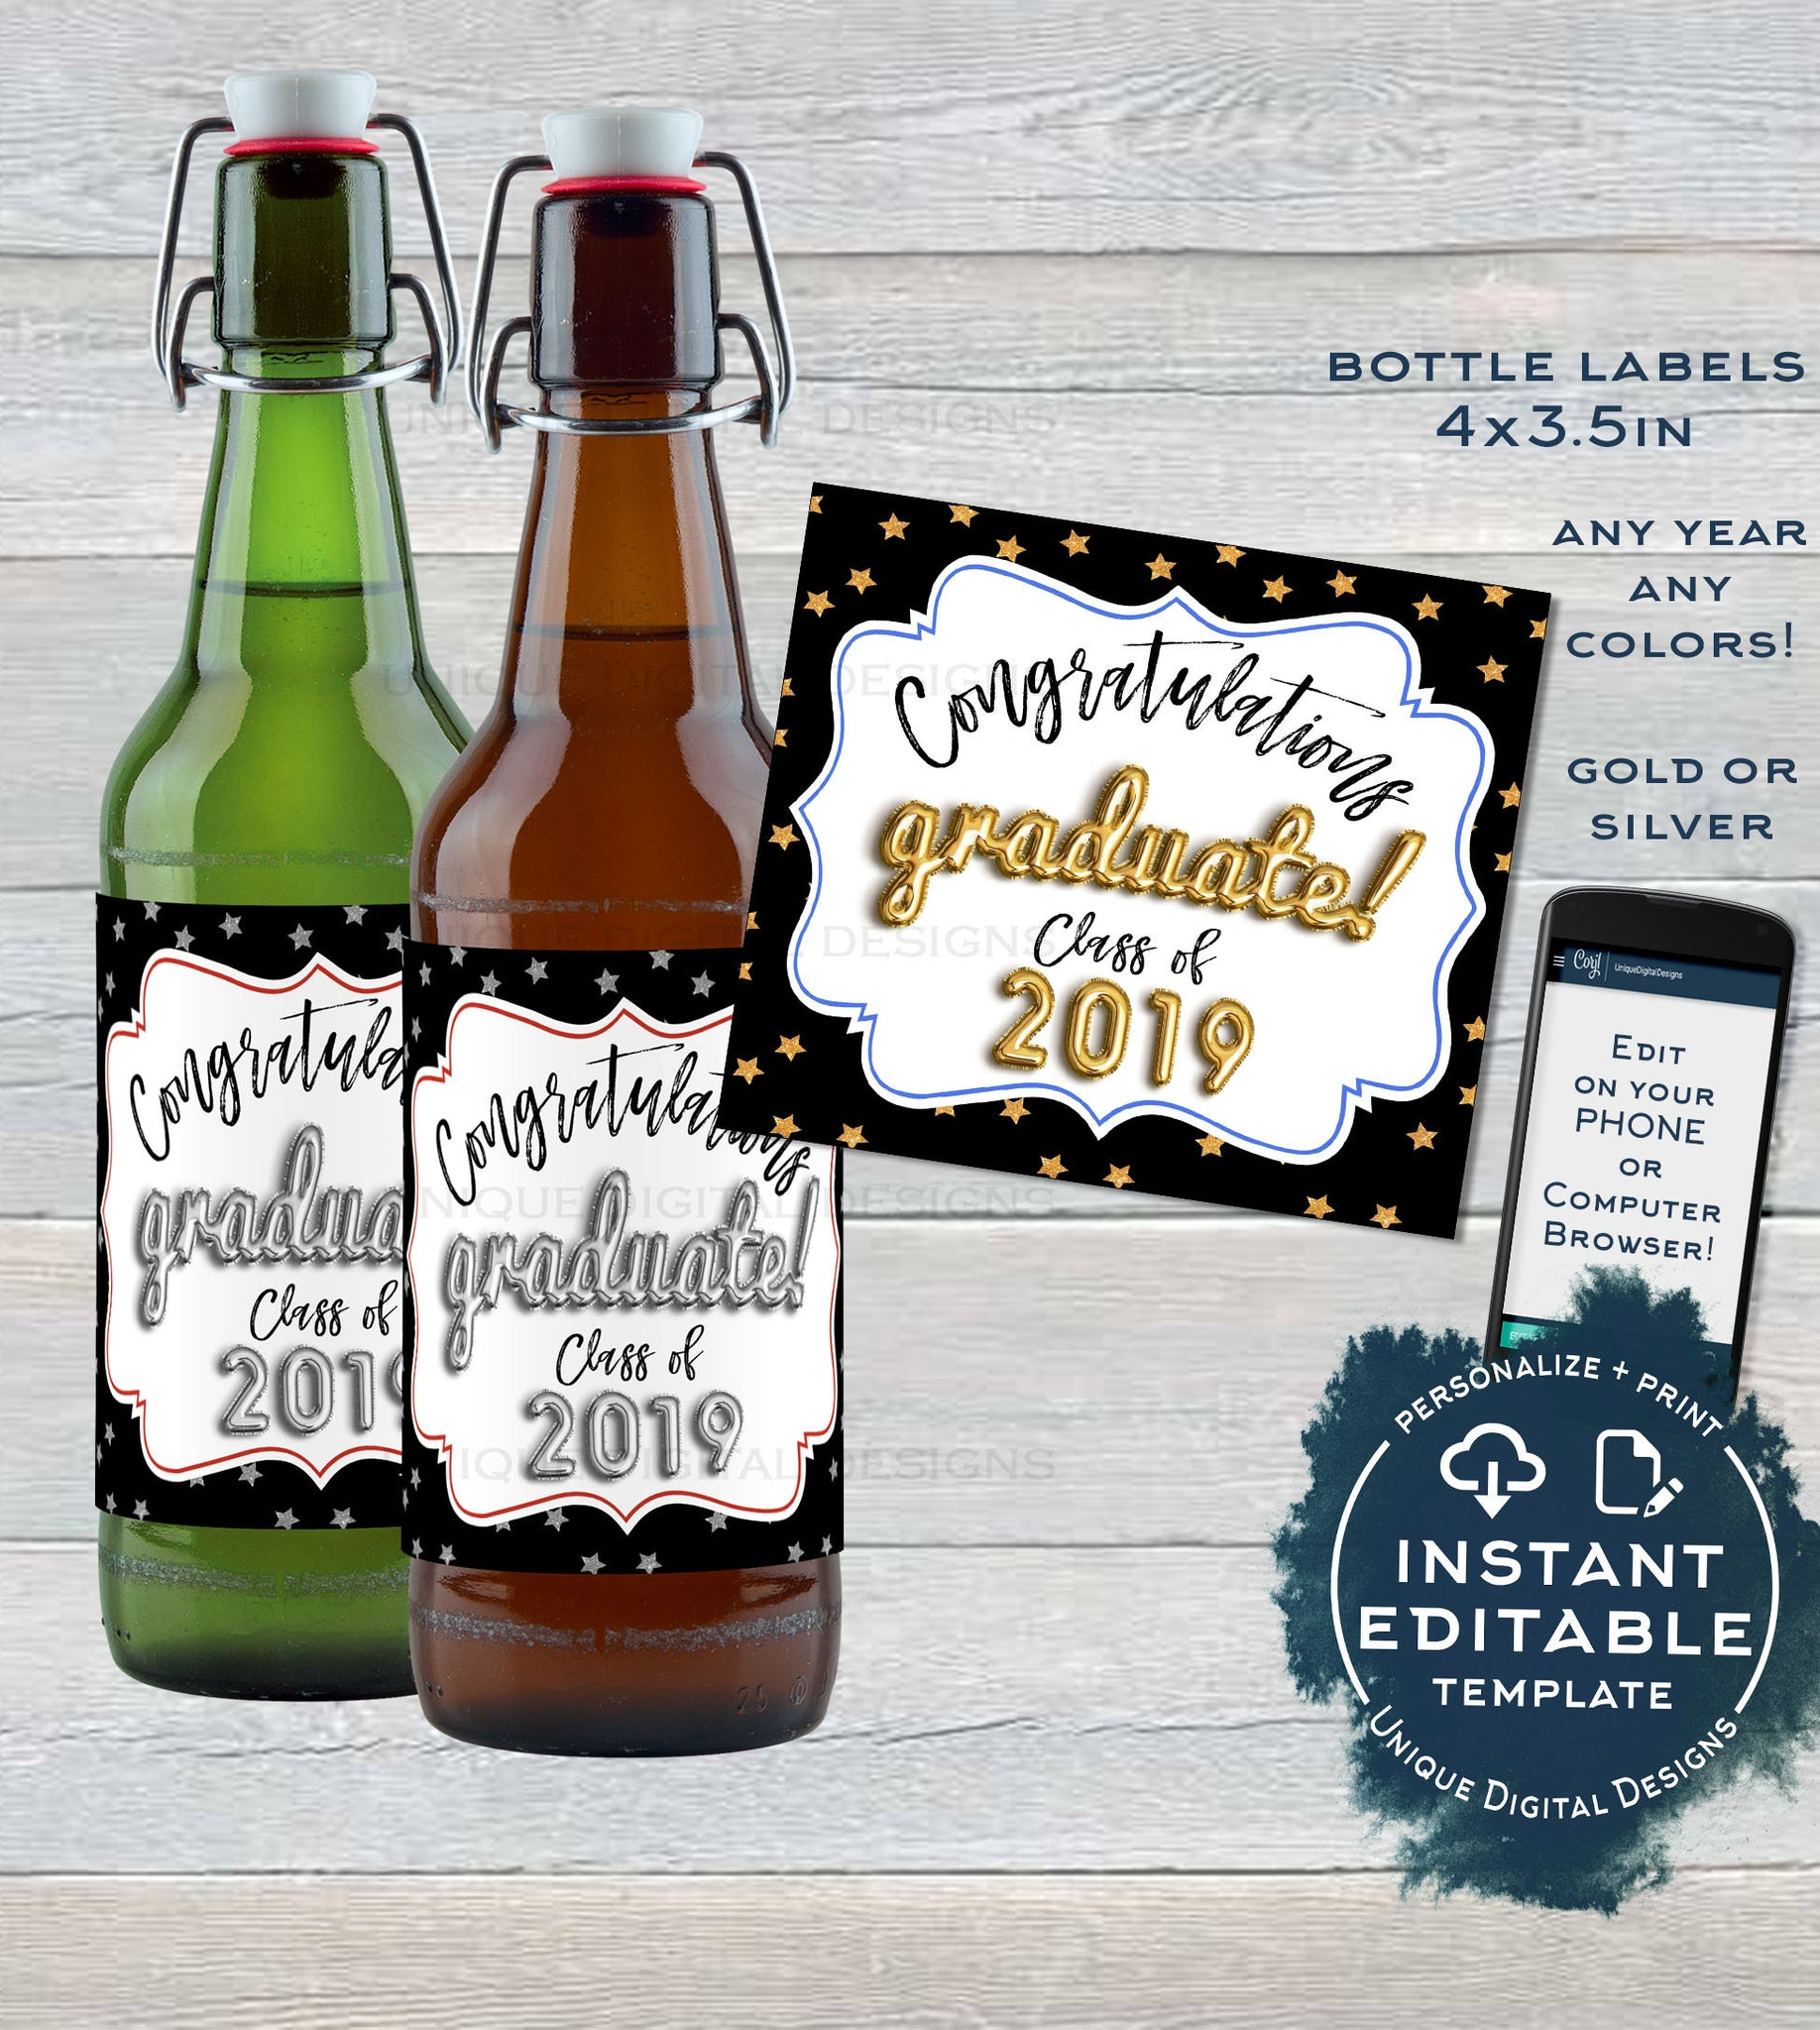 graphic relating to Printable Beer Bottle Labels named Commencement Beer Bottle Label, Editable Beer Label Sticker, University Cl of 2019 Get together Decoration, Custom-made Printable Quick Down load